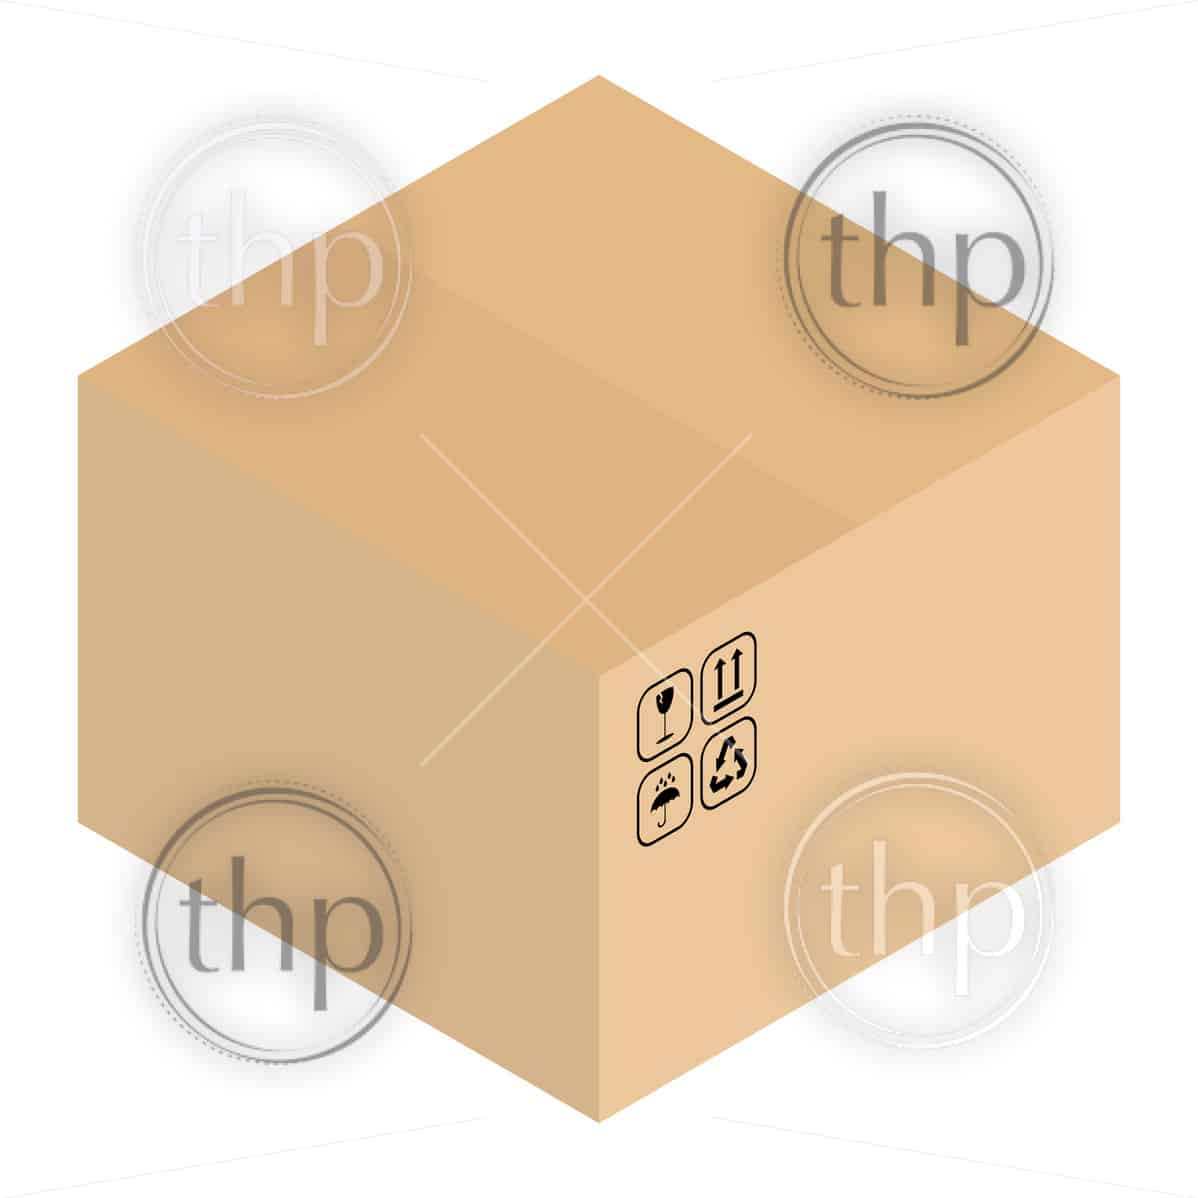 Carboard packing box vector with packaging symbols in isometric design style